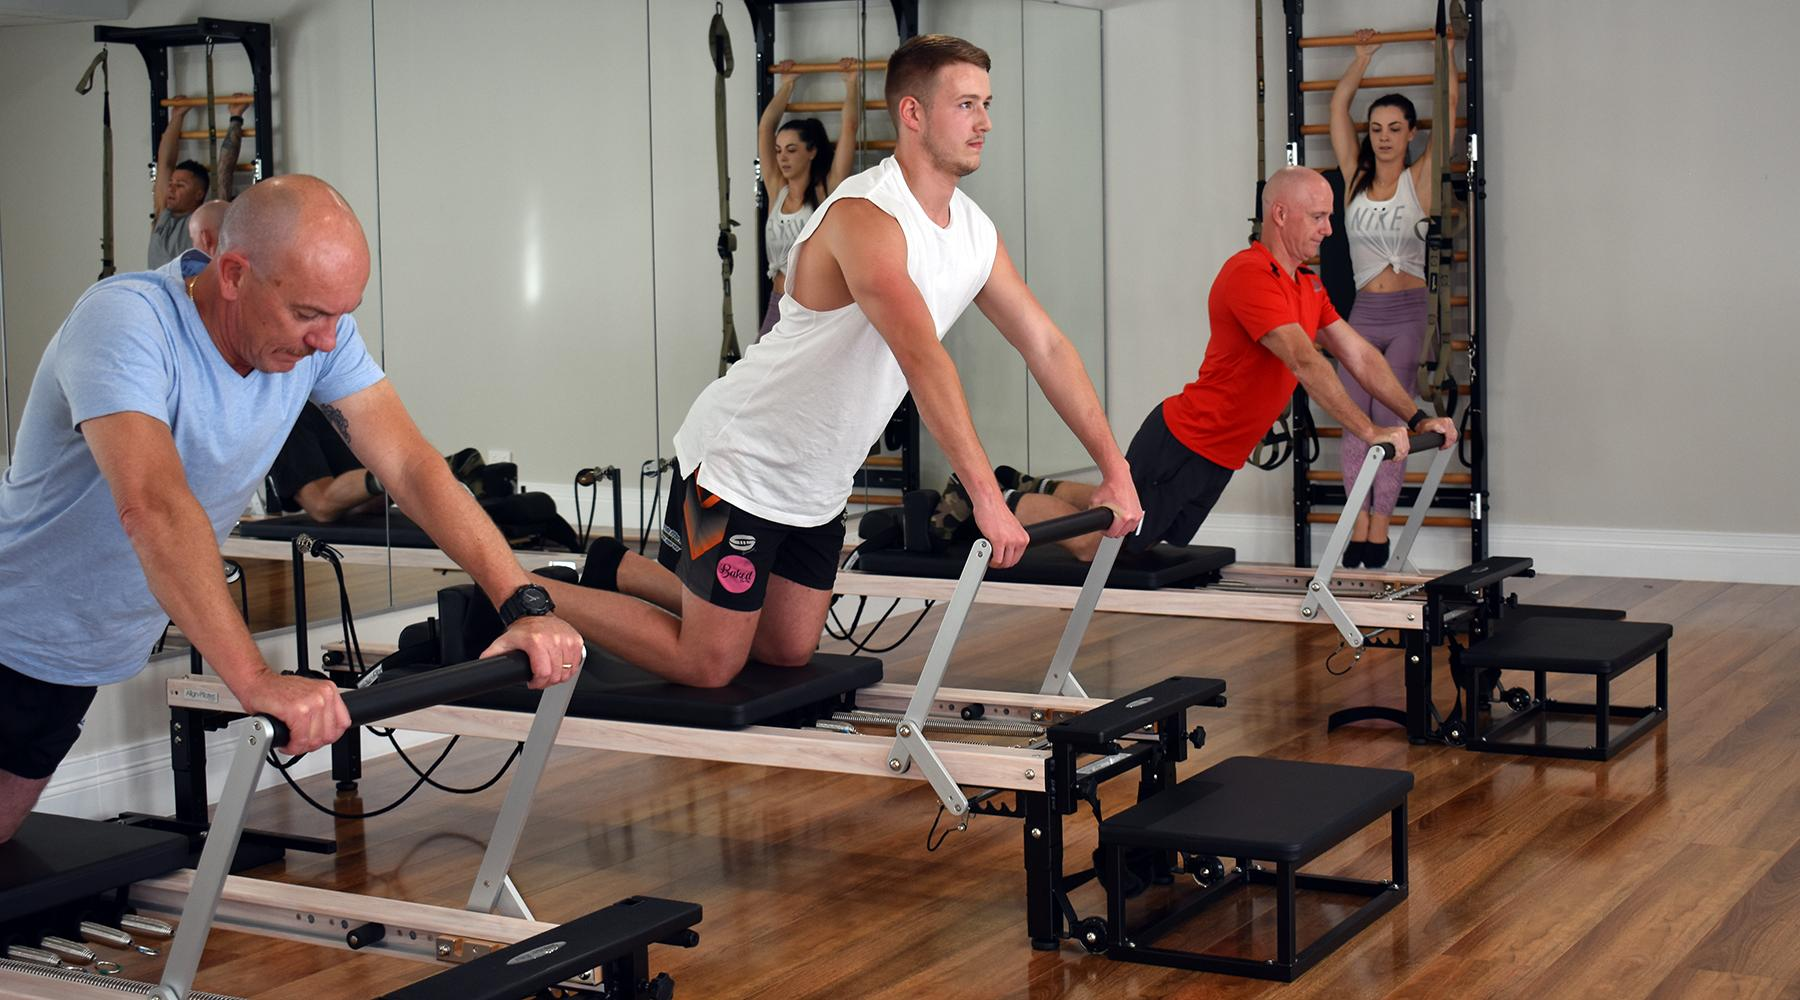 Semprose Pilates and Fitness - ongoing classes inside the studio